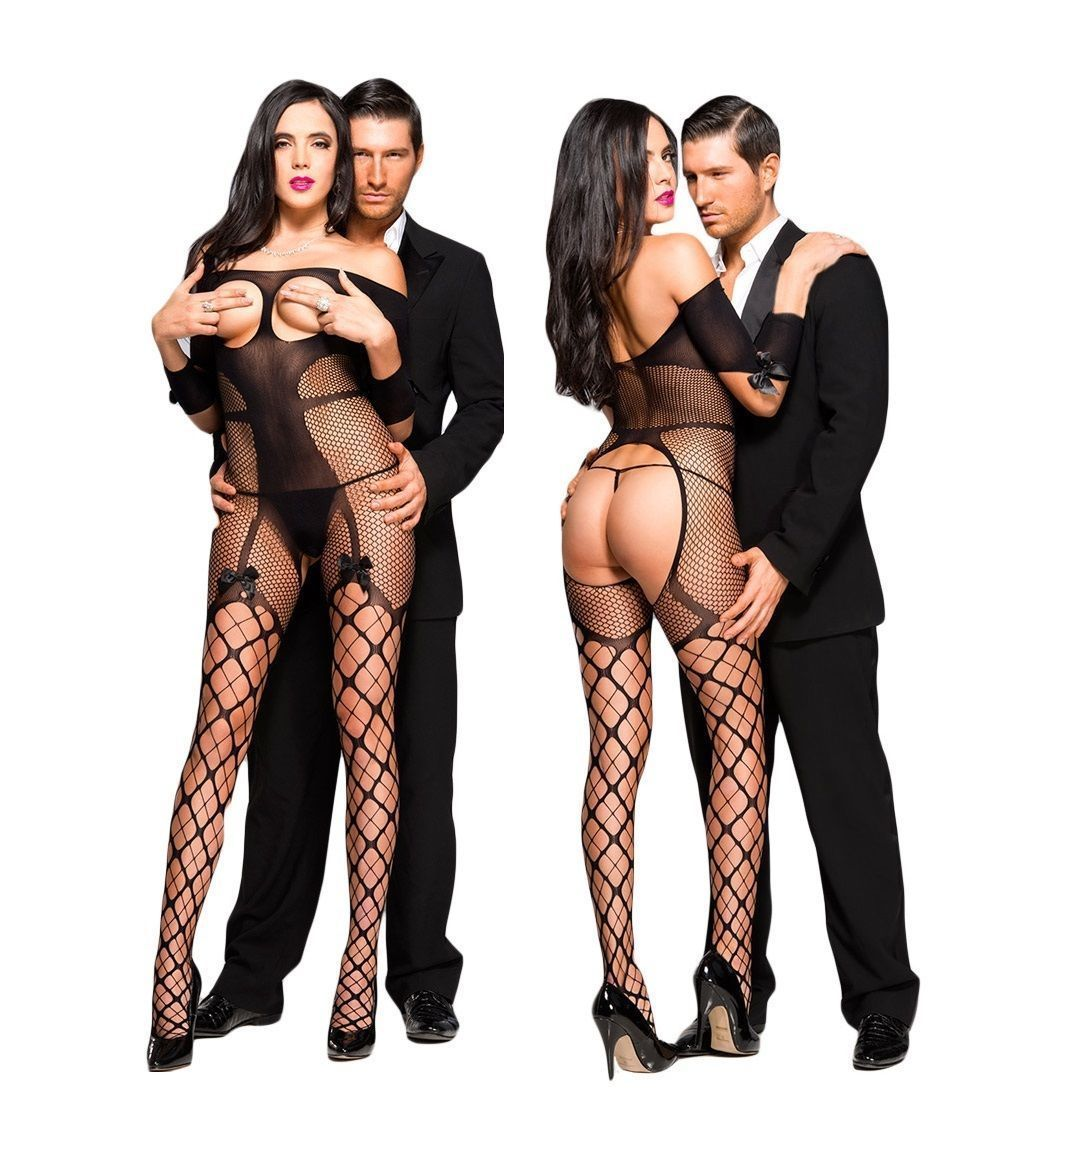 e88e910cc7 £9.99 GBP - Black Seductive Bodysuit Bnwt Tights Catsuit Bodystocking  Lingerie Fishnet A2  ebay  Fashion